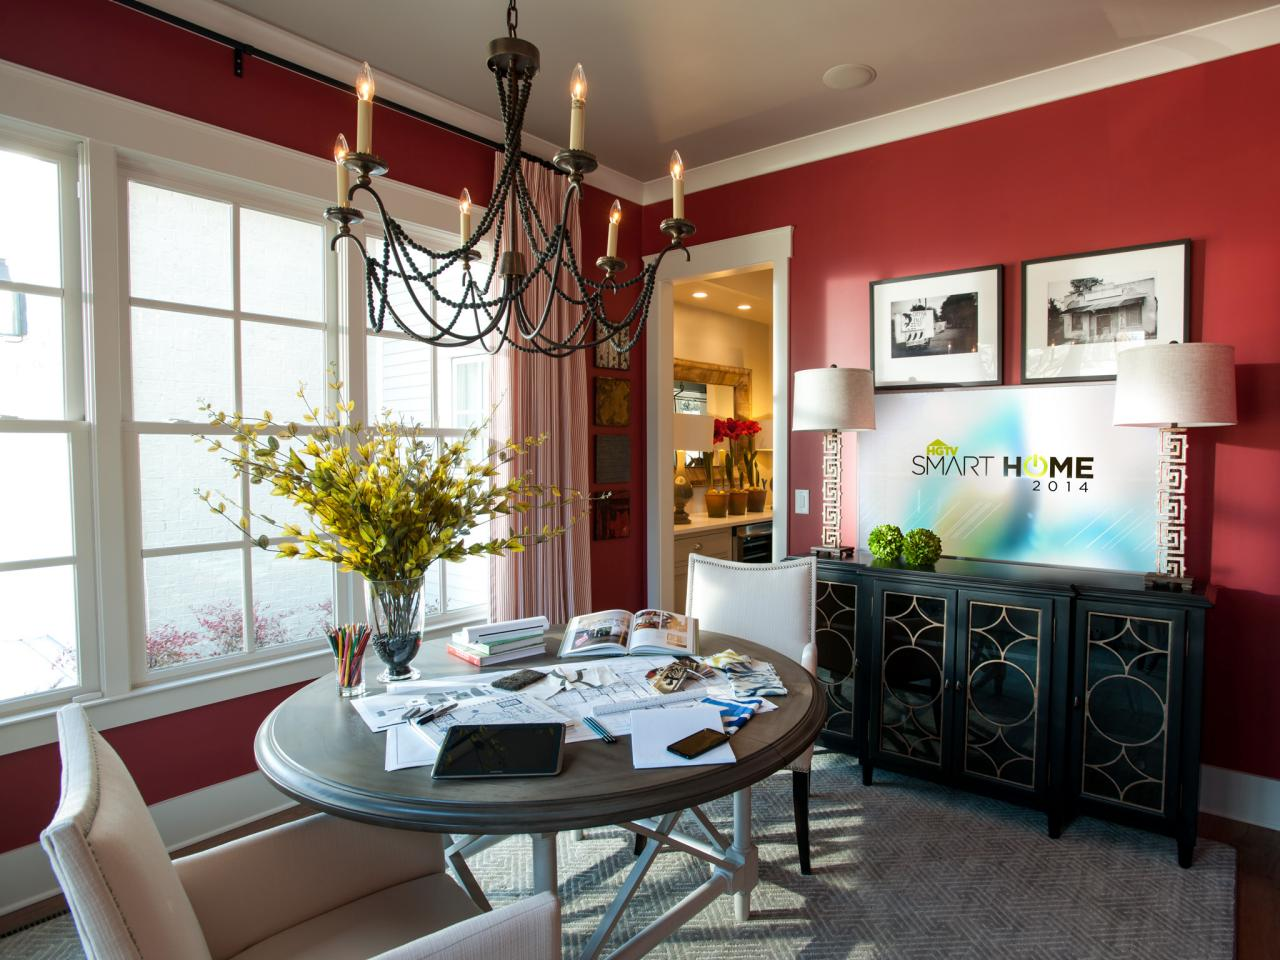 Beautiful rooms from hgtv smart home 2014 hgtv smart Dining room designs 2014